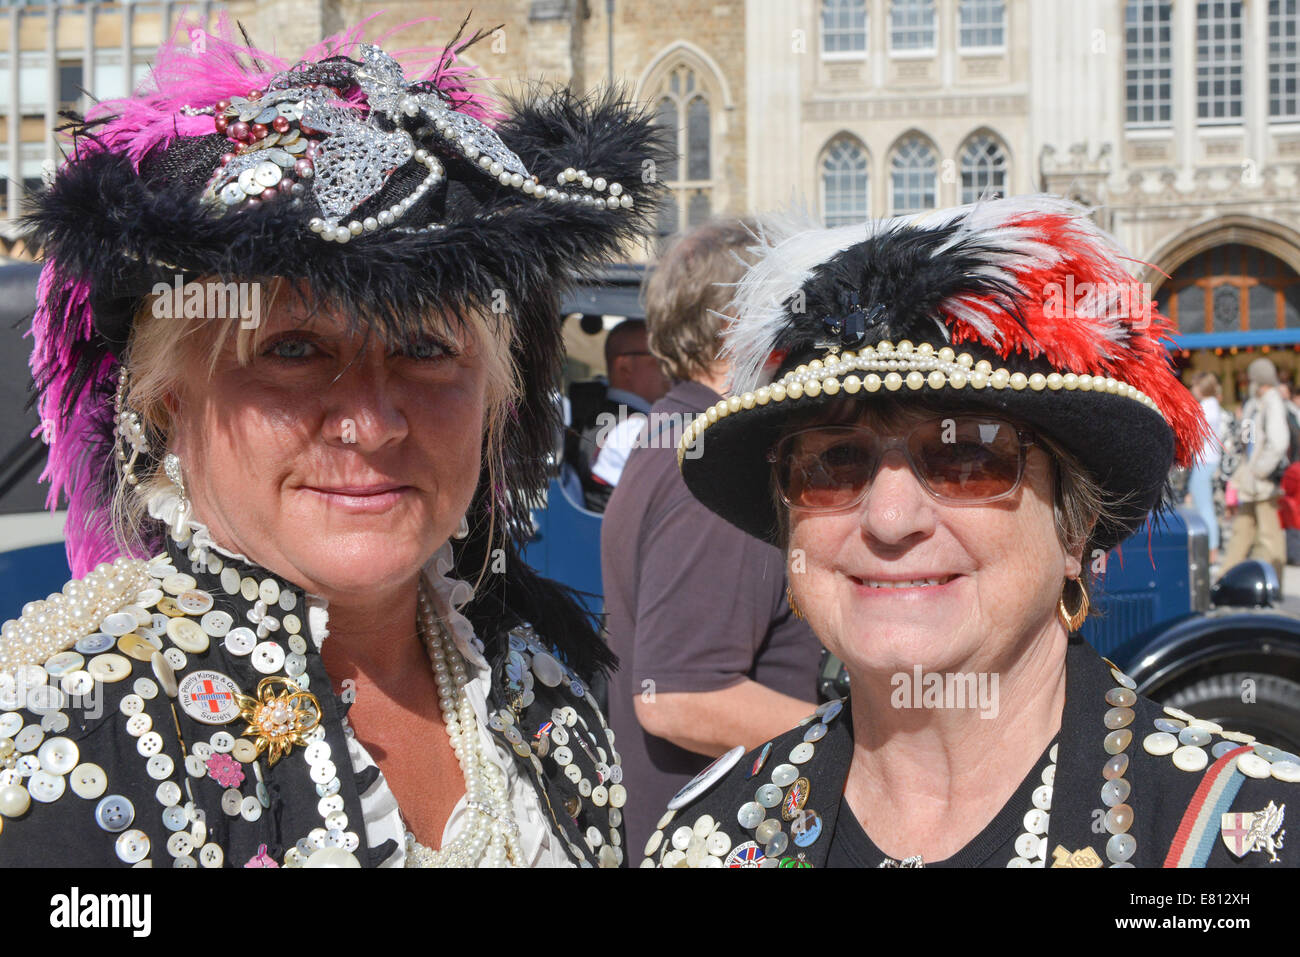 Guildhall Yard, London, UK. 28th September 2014. Two Pearly Queens at the annual  London Pearly Kings & Queens - Stock Image